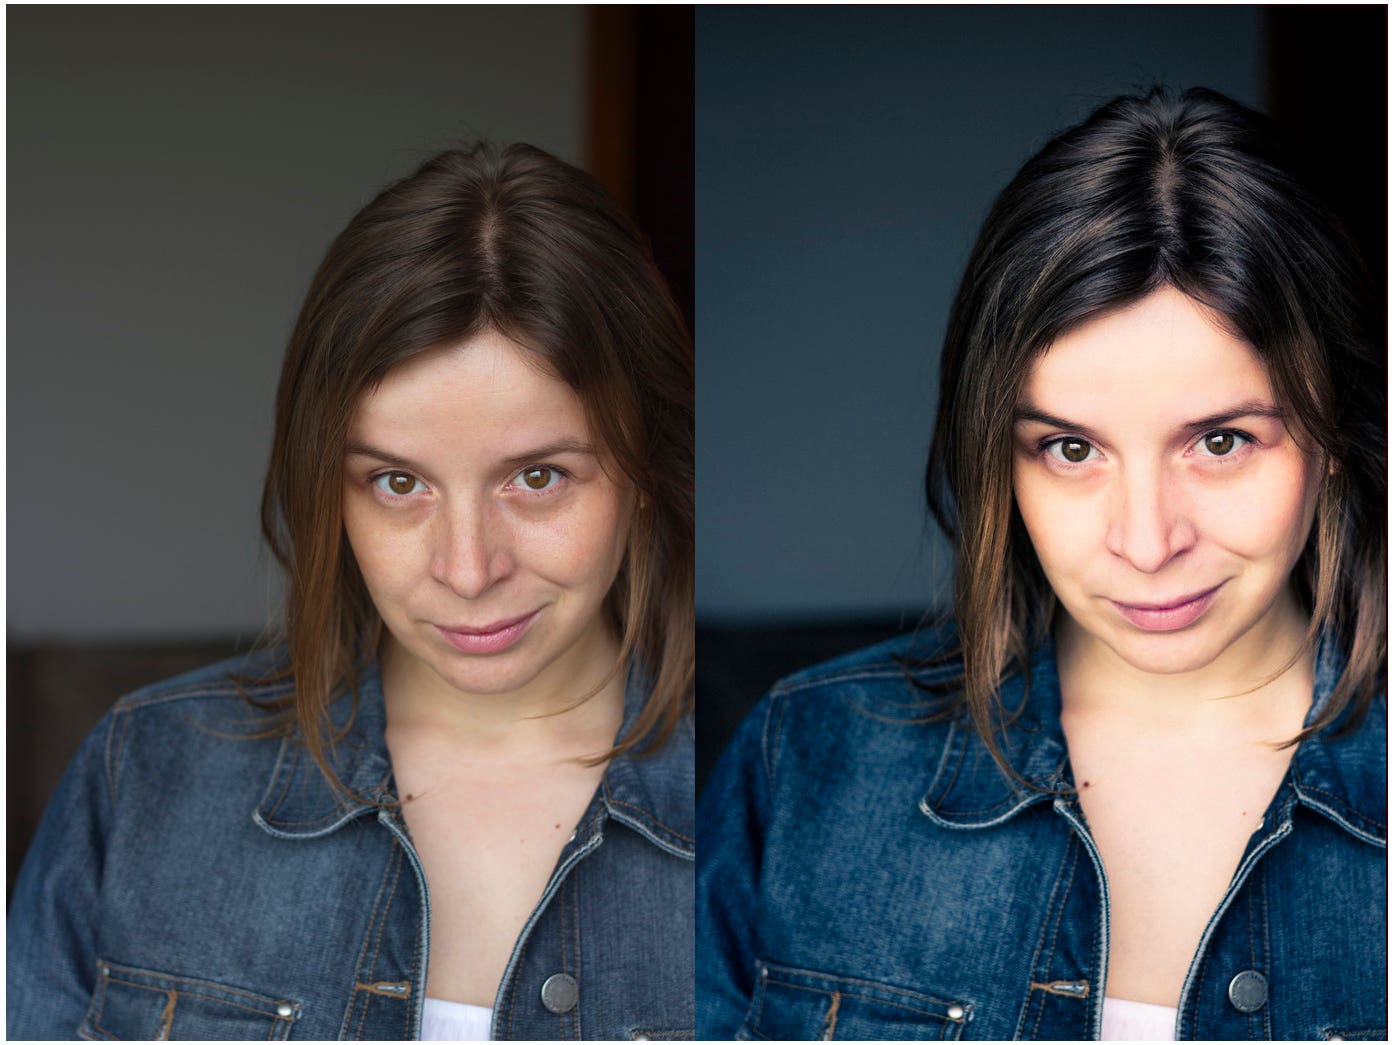 Photography and Image editing - before and after